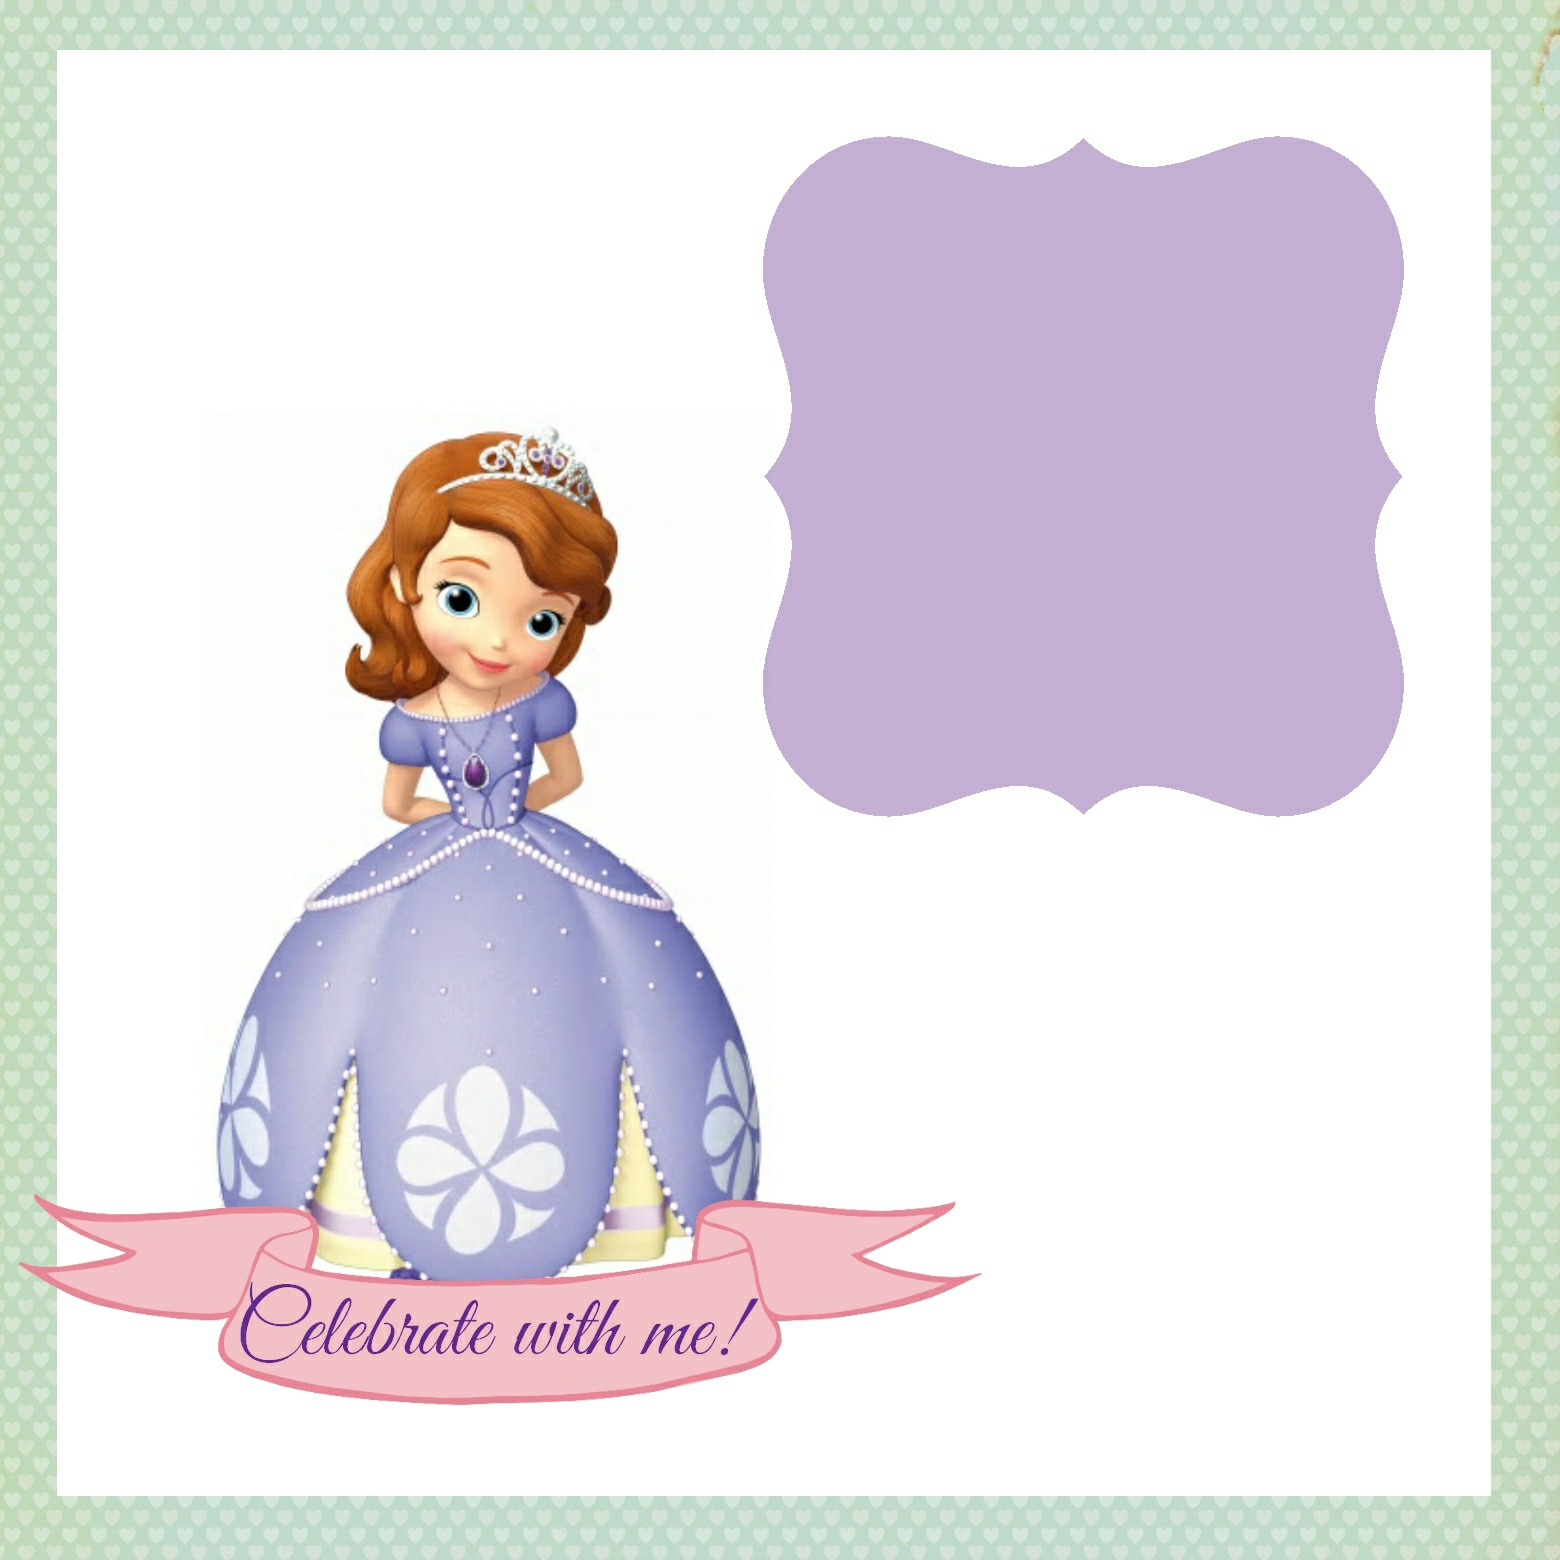 Sofia the first birthday card template image result for sofia the first birthday card template bookmarktalkfo Image collections